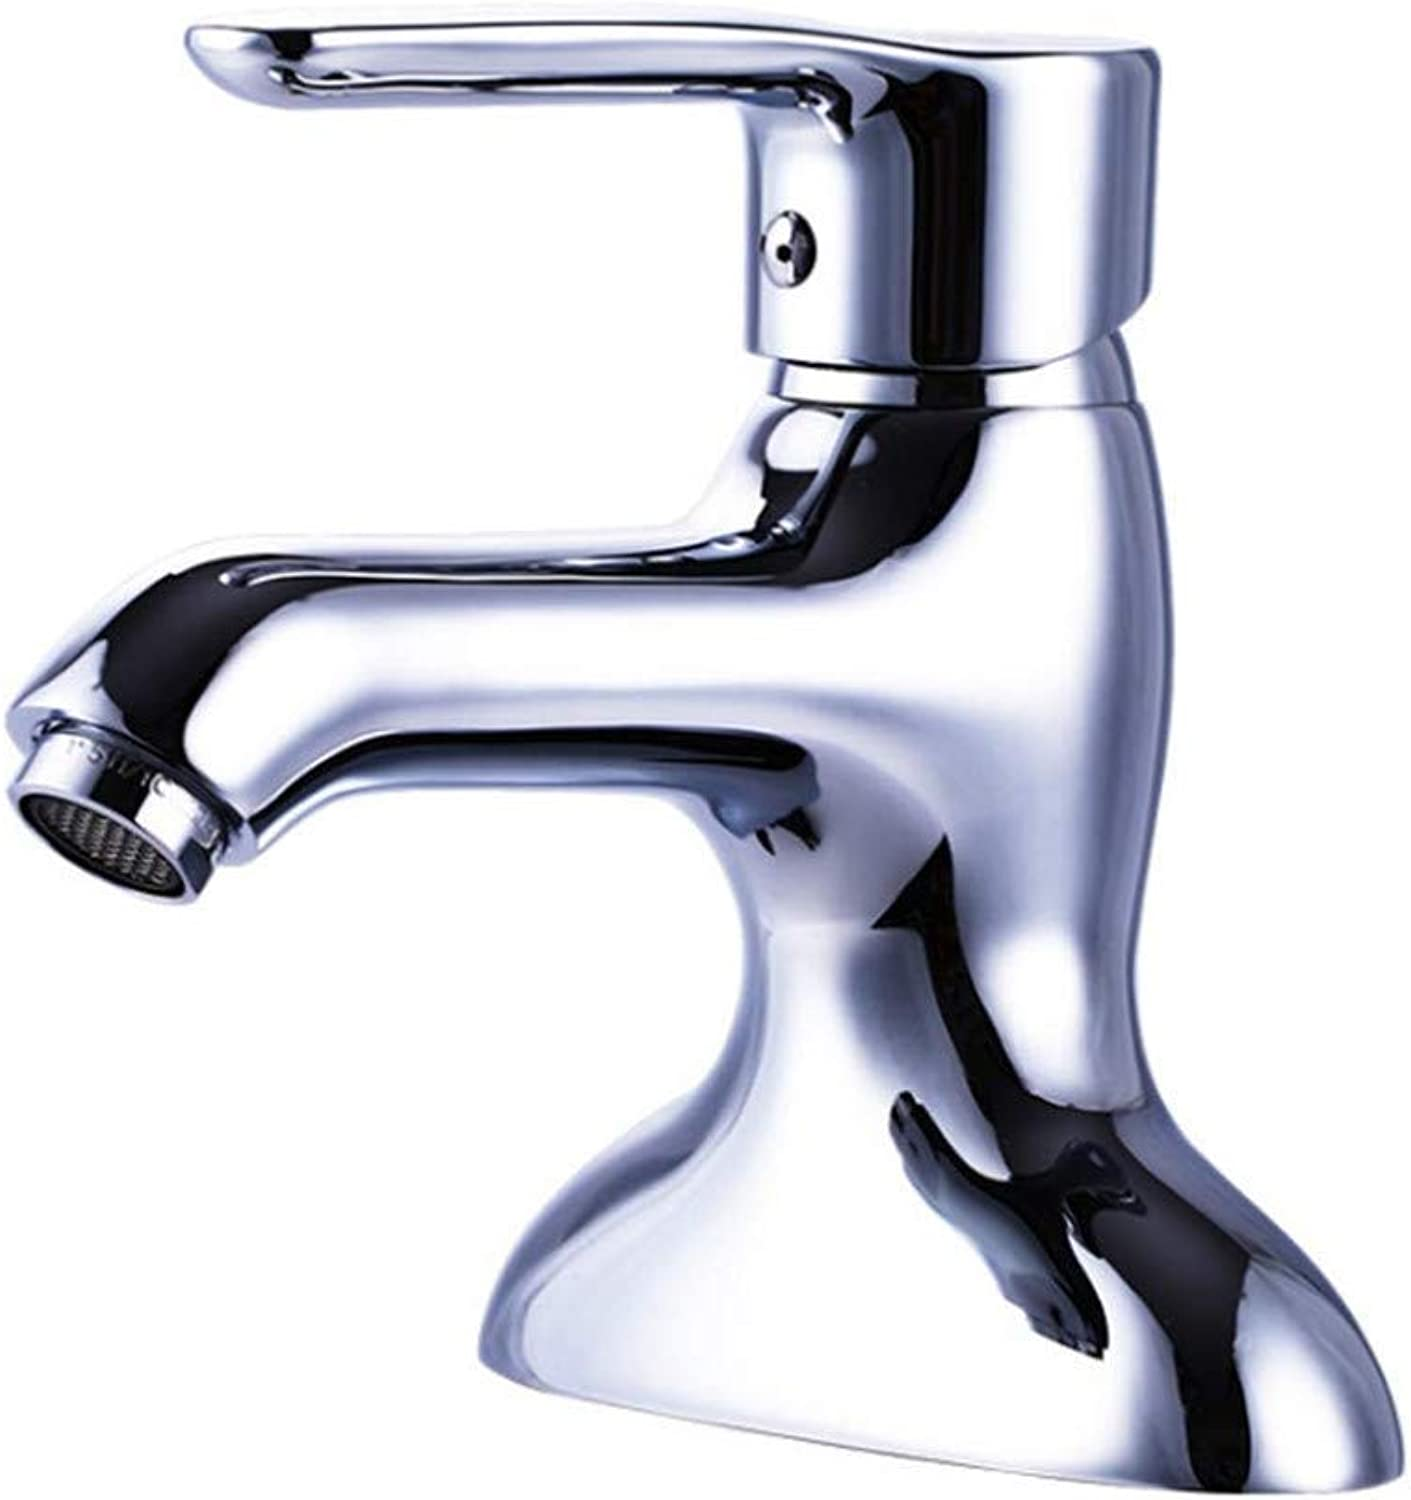 Water Tap Drinking Designer Archa Washbasin Faucet in The Bathroom A Single Washbasin Faucet Washes A Washbasin Faucet